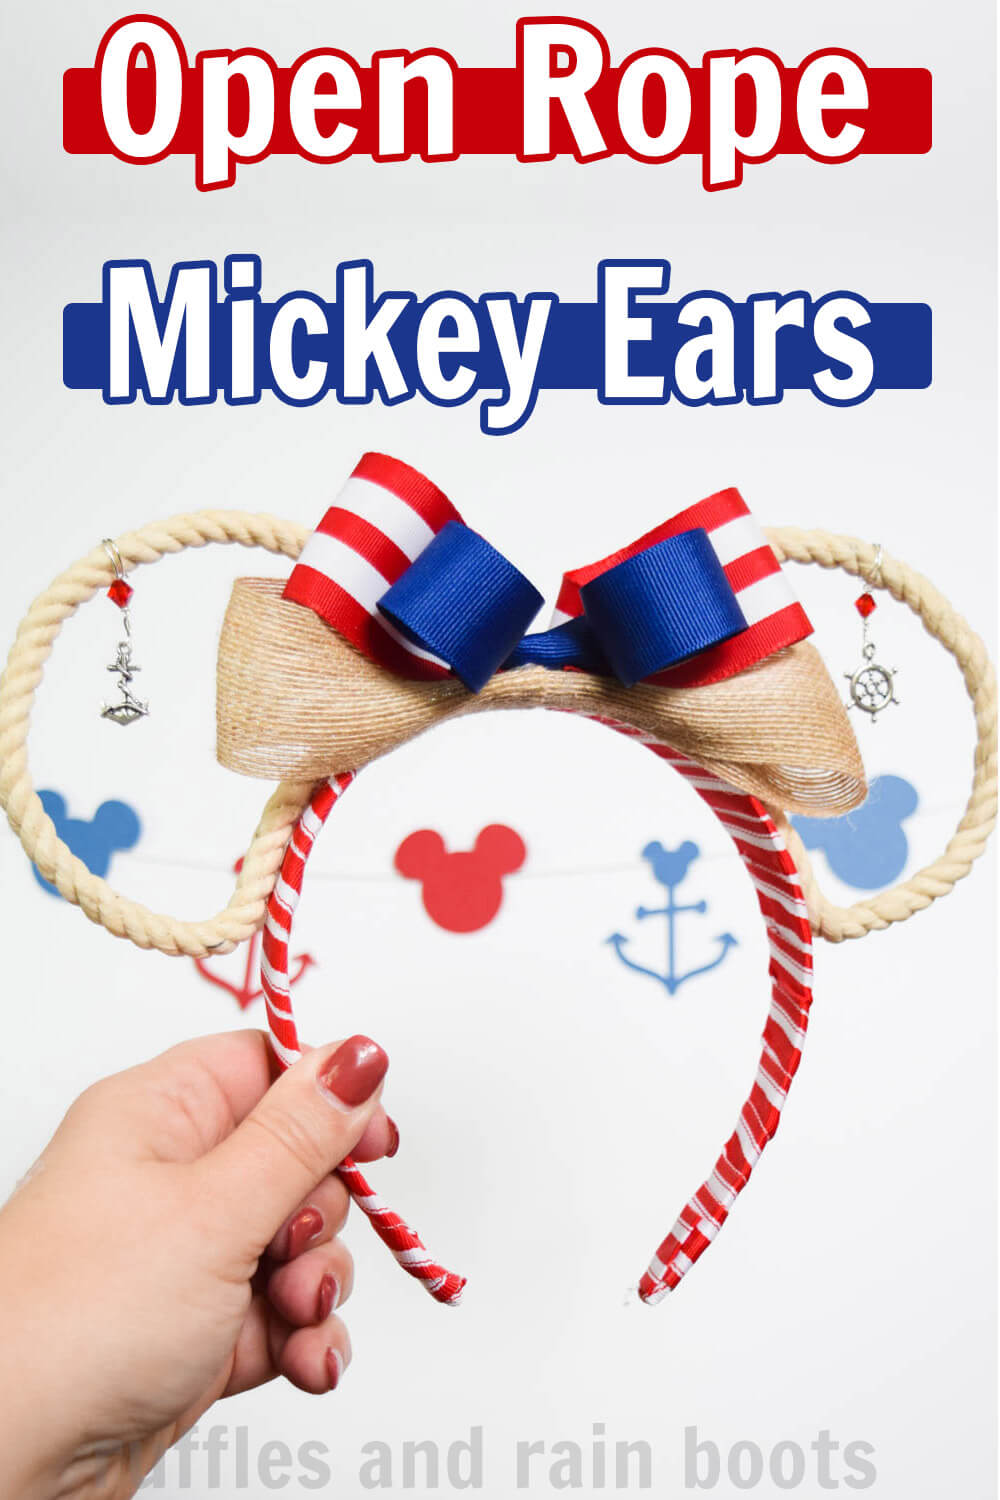 hand holding red white and blue rope Mickey ears for a cruise or a resort vacation with text which reads Open Rope Mickey Ears